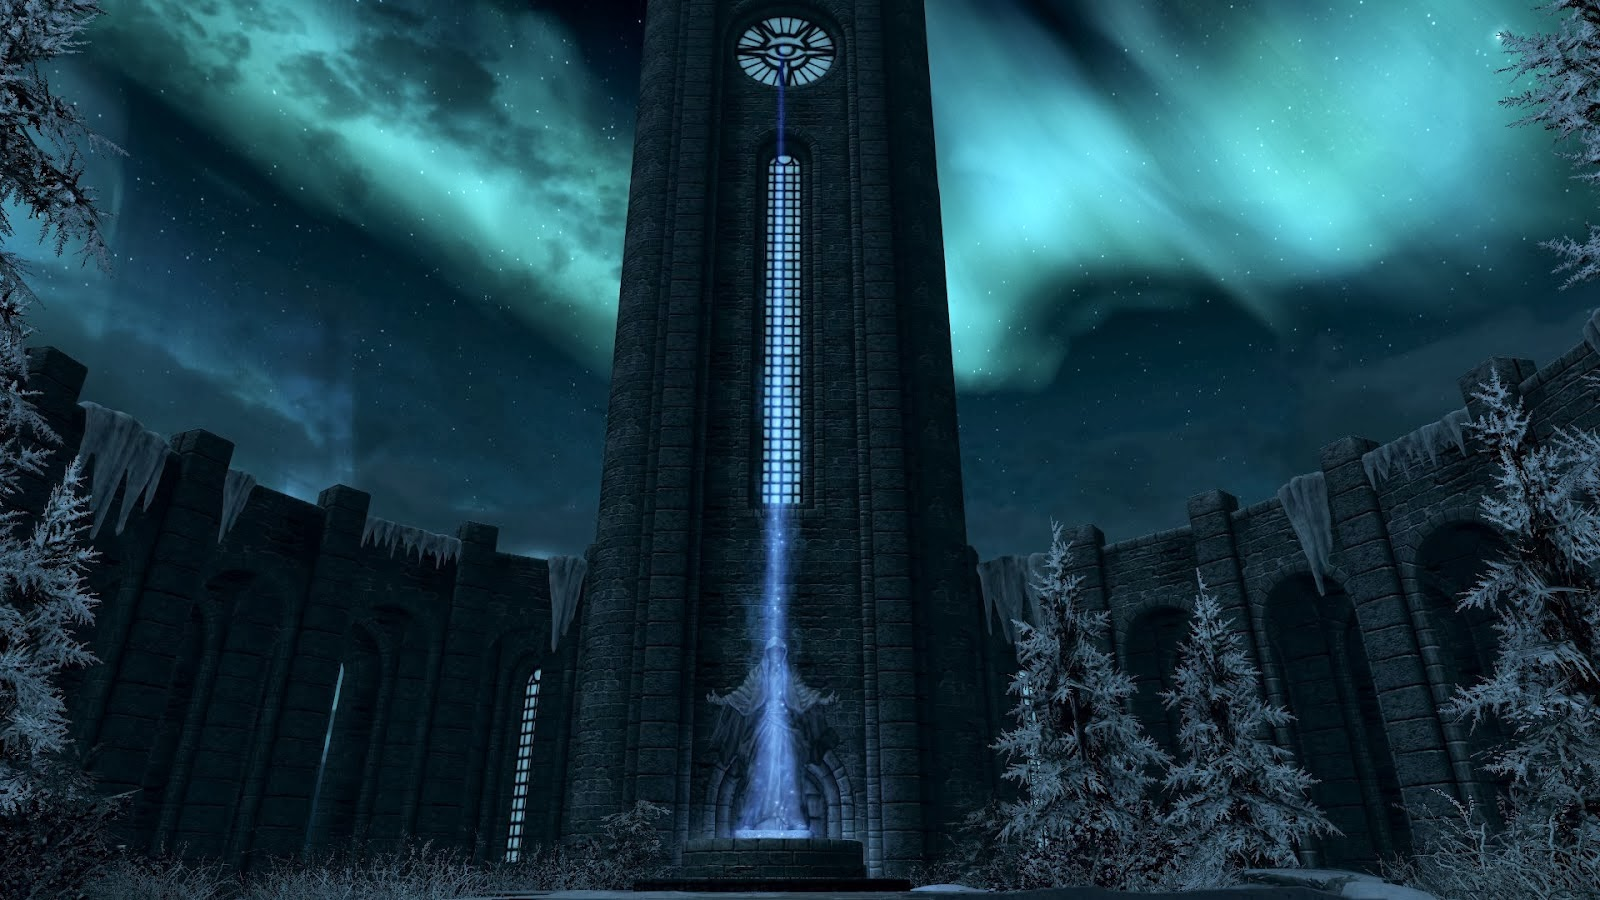 The Art of Architecture: Skyrim Architecture :: College of